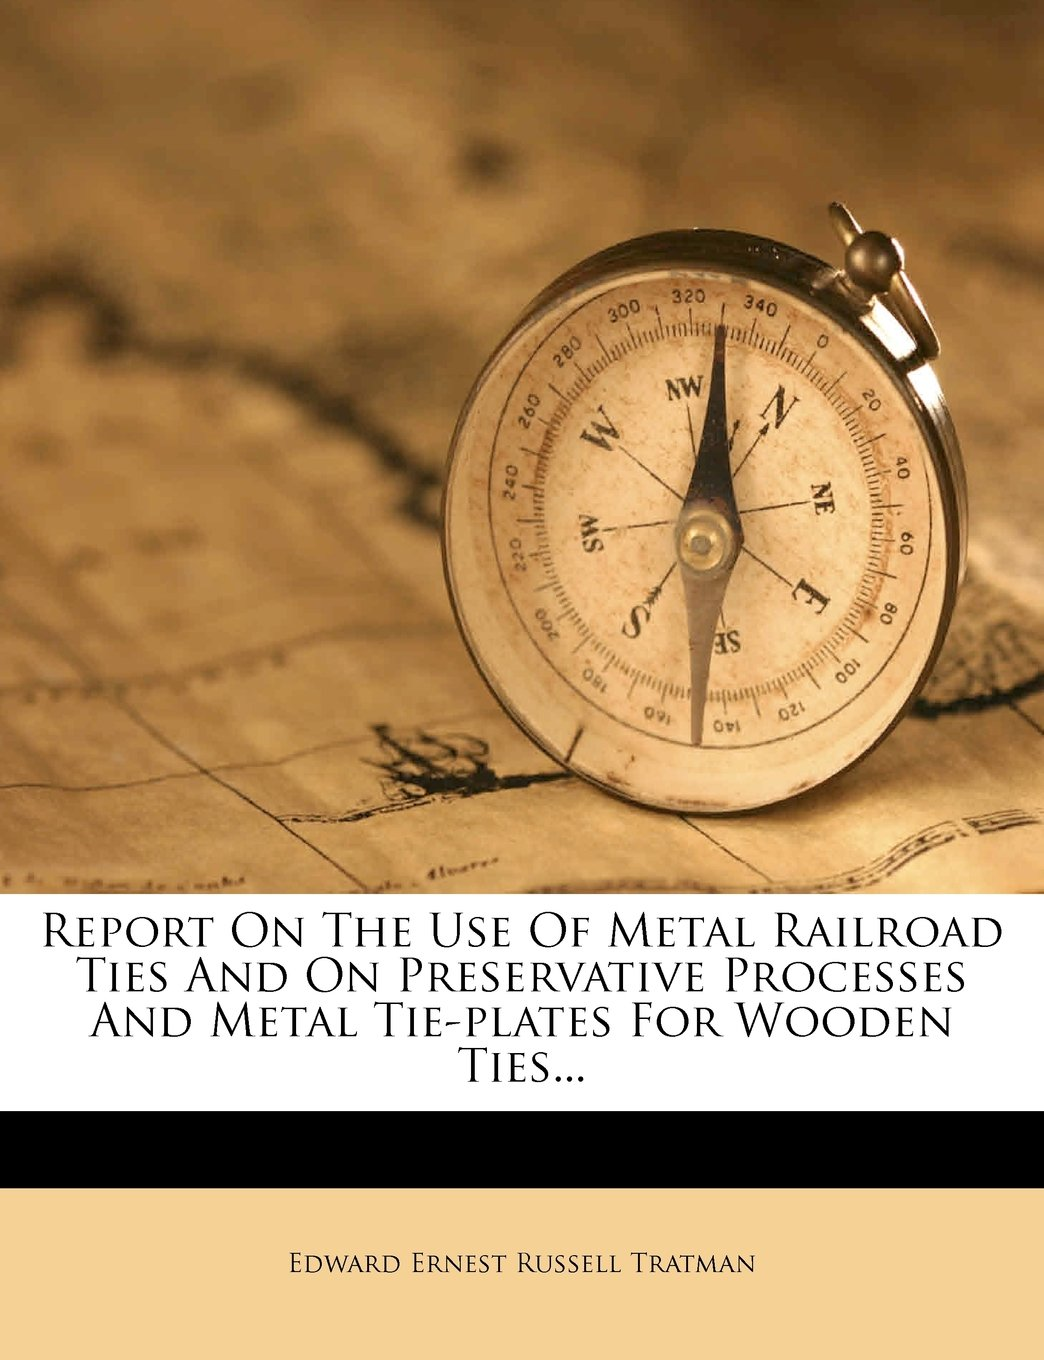 Read Online Report On The Use Of Metal Railroad Ties And On Preservative Processes And Metal Tie-plates For Wooden Ties... ebook